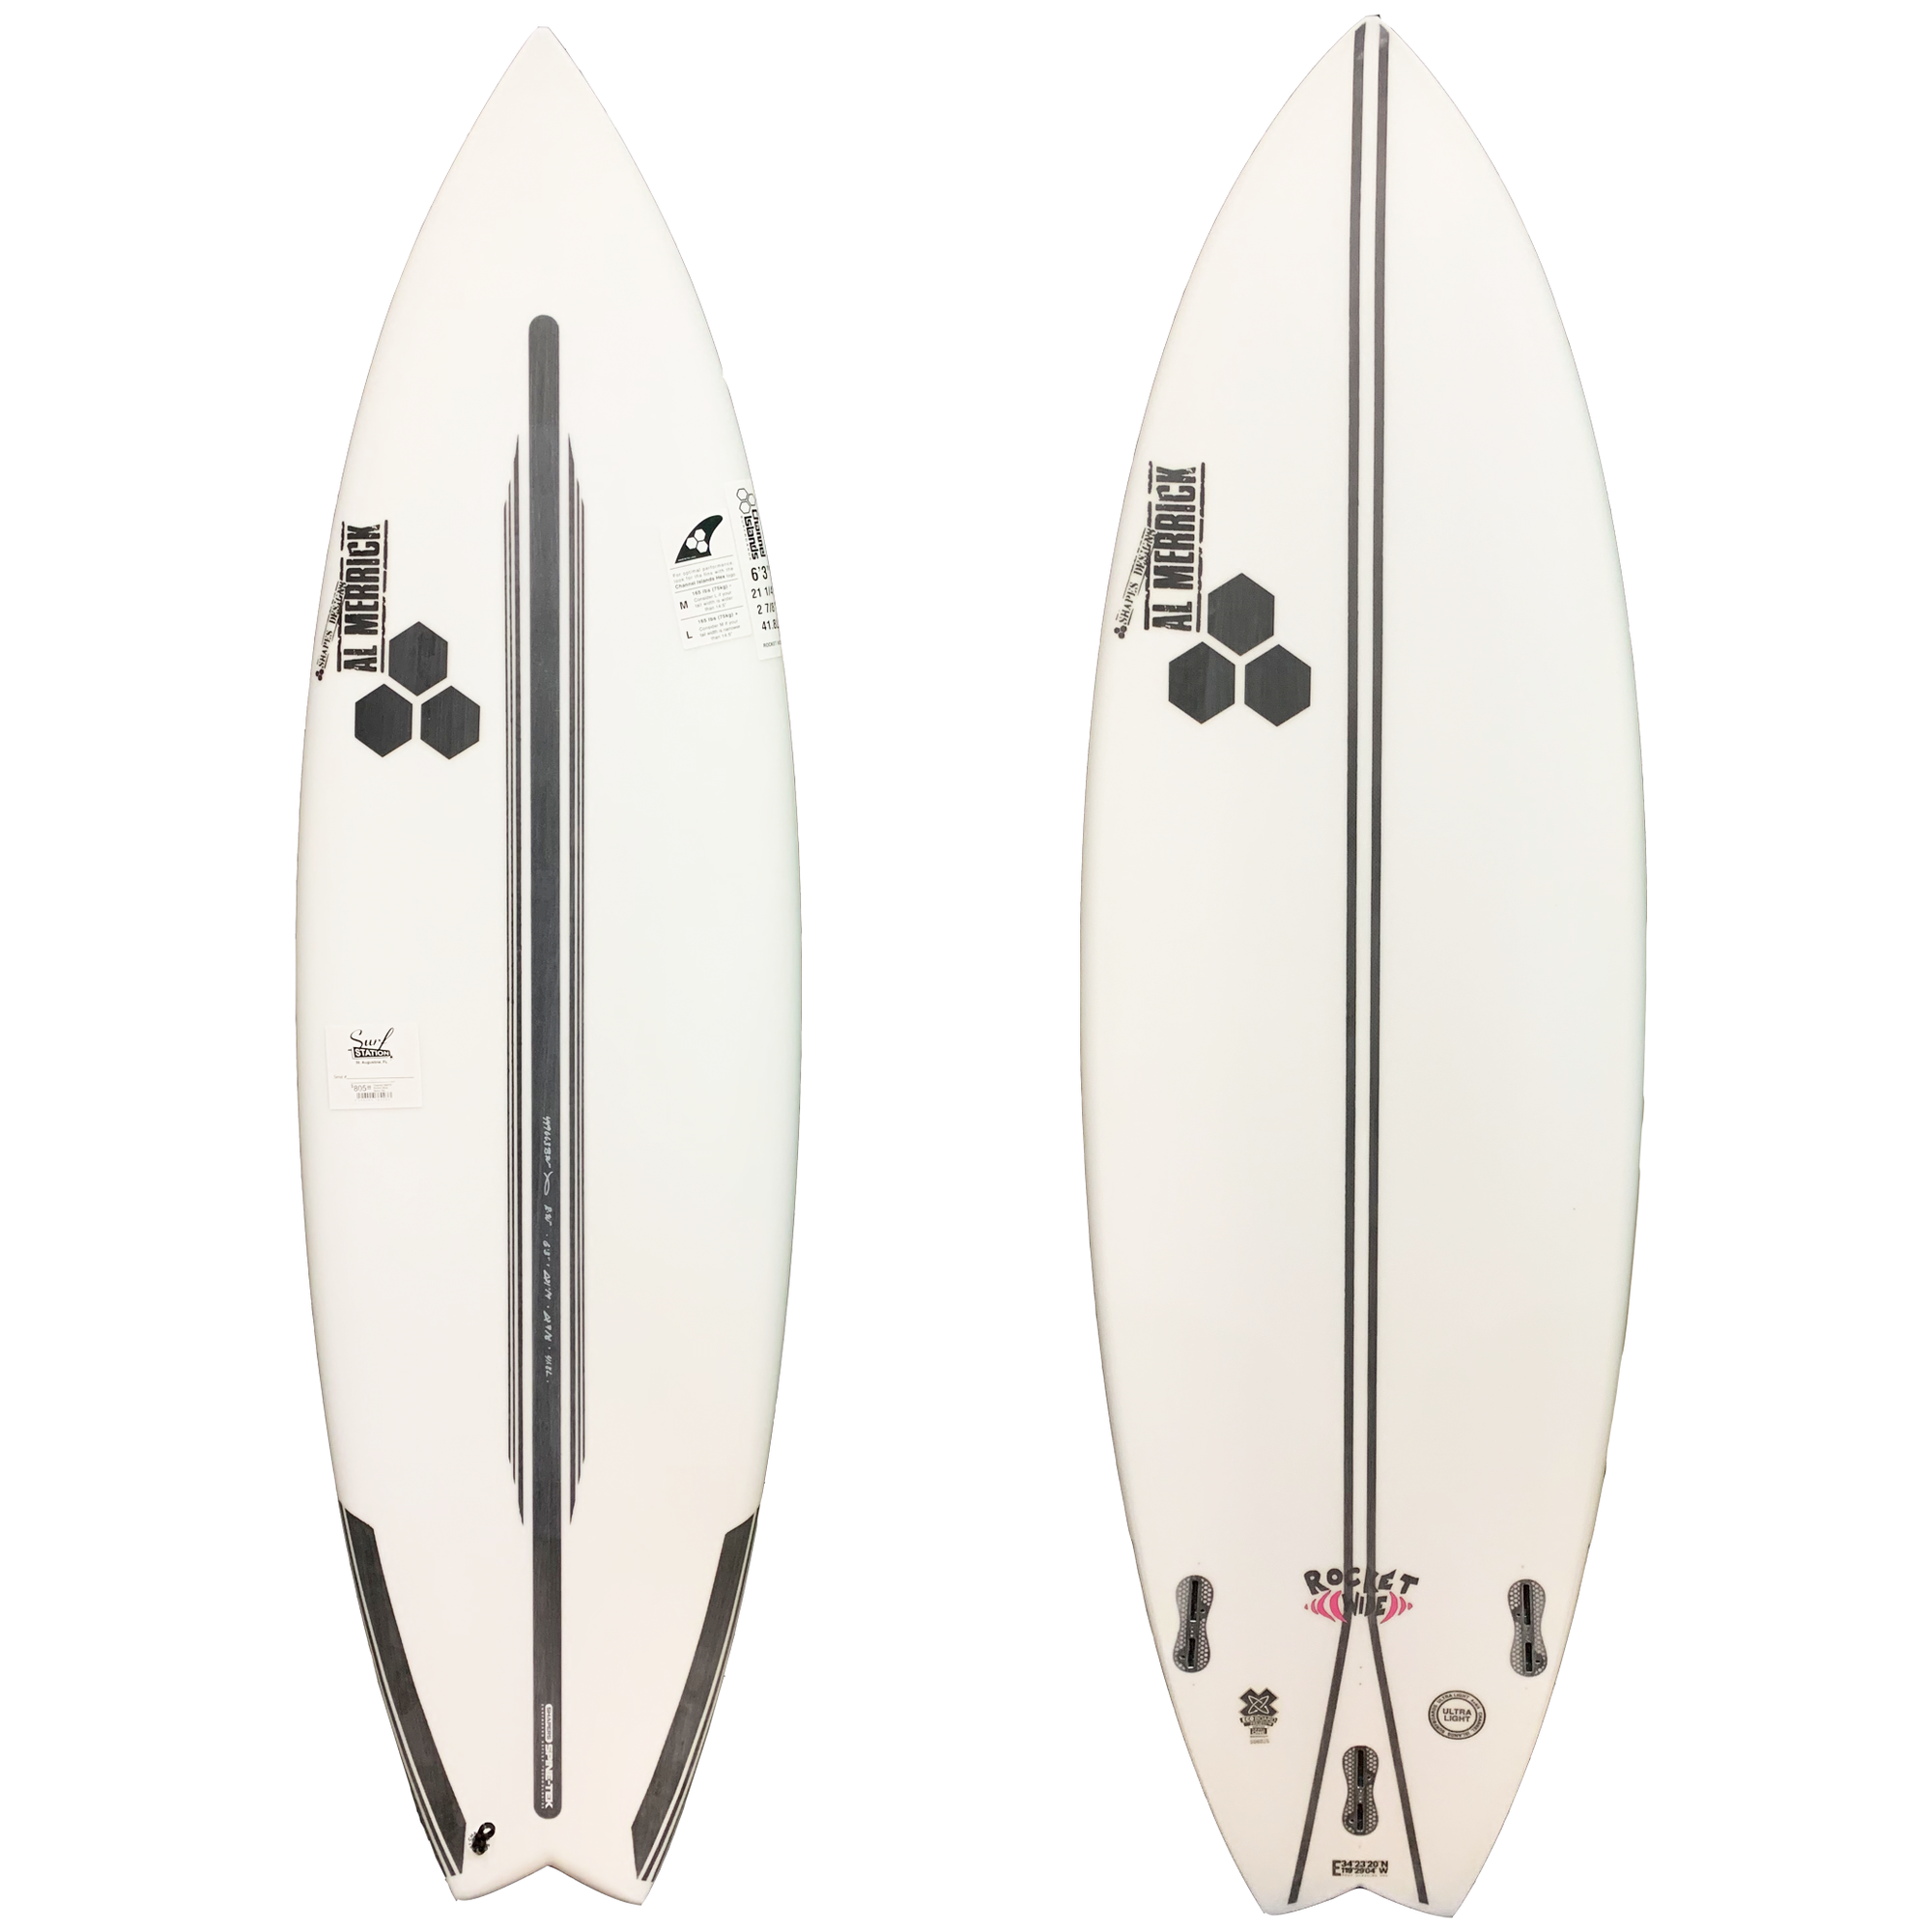 Channel Islands Rocket Wide Spine-Tek Surfboard - FCS II